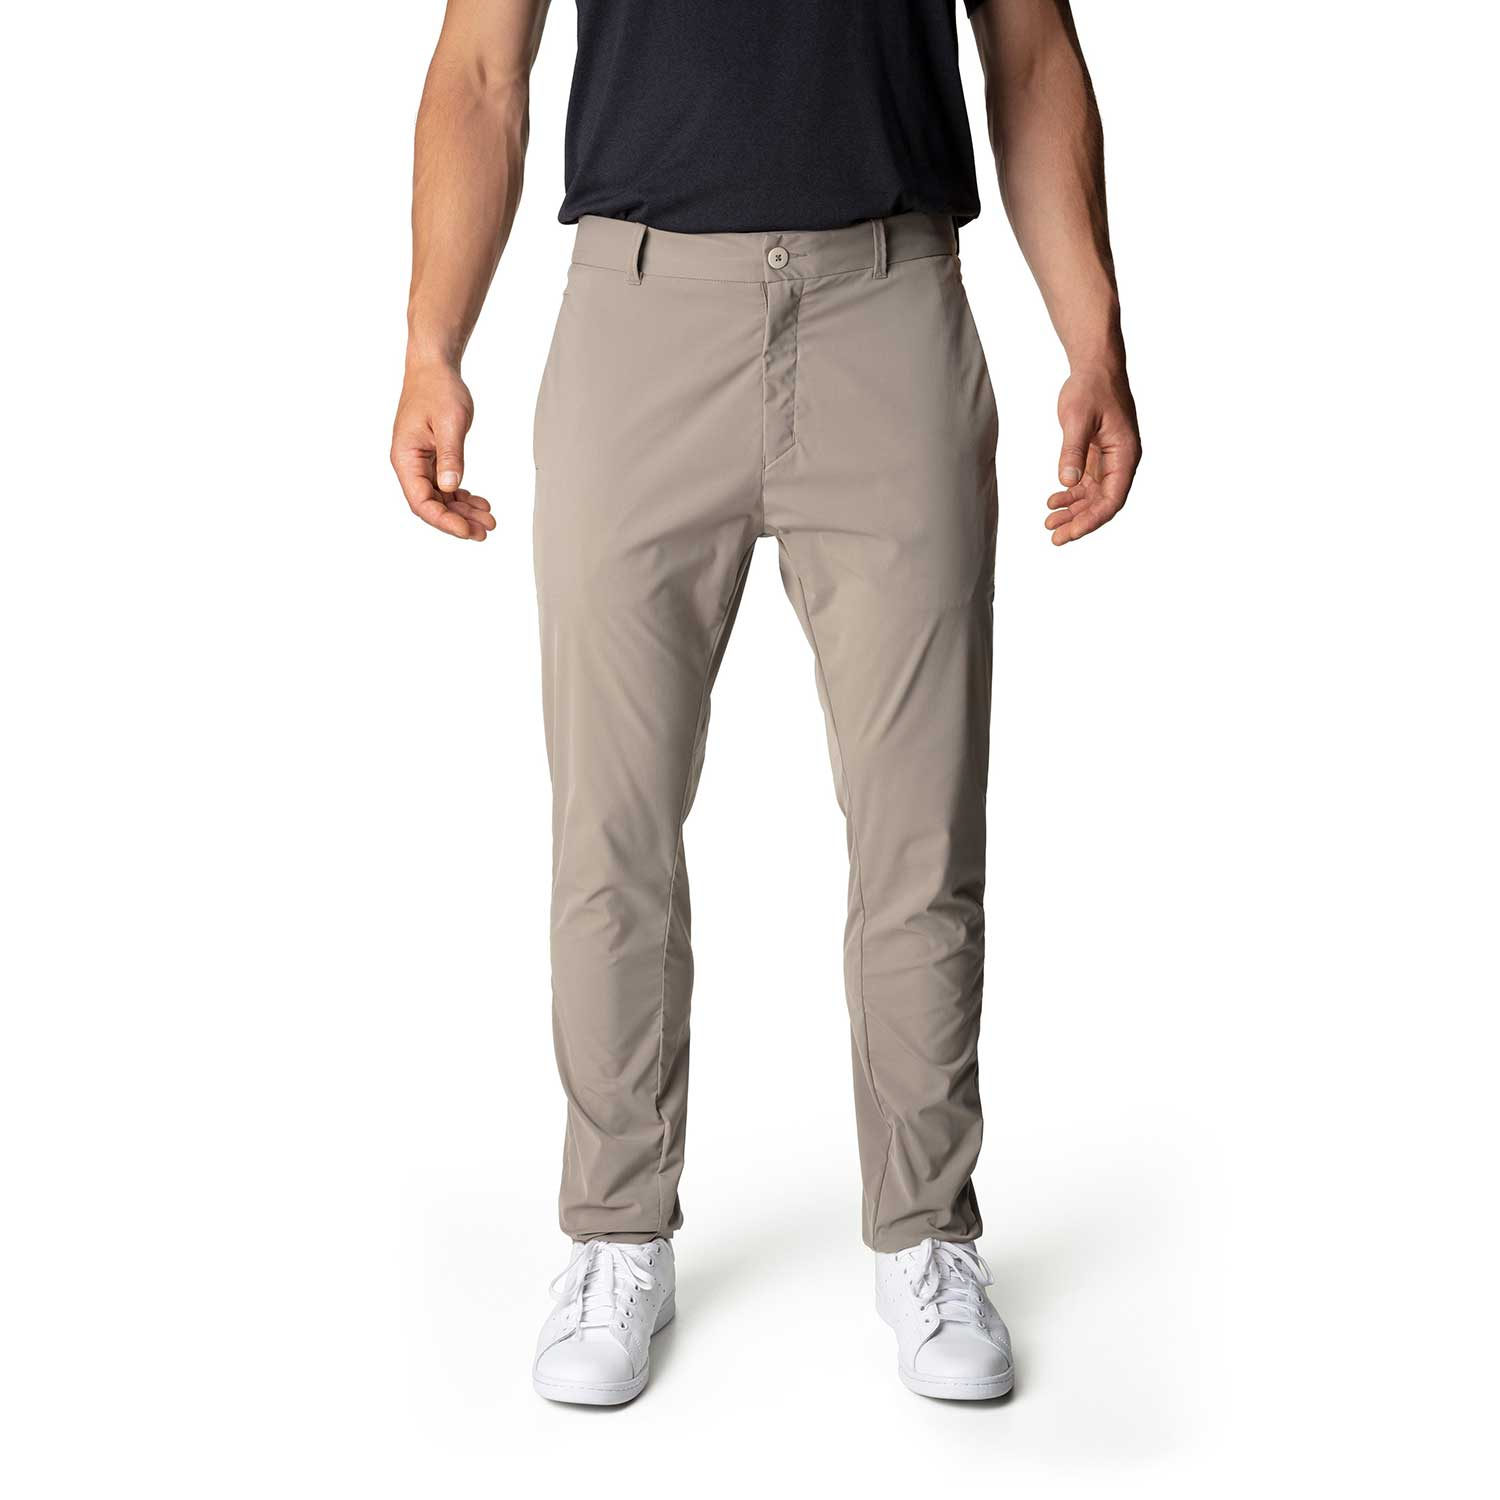 M's Commitment Chinos